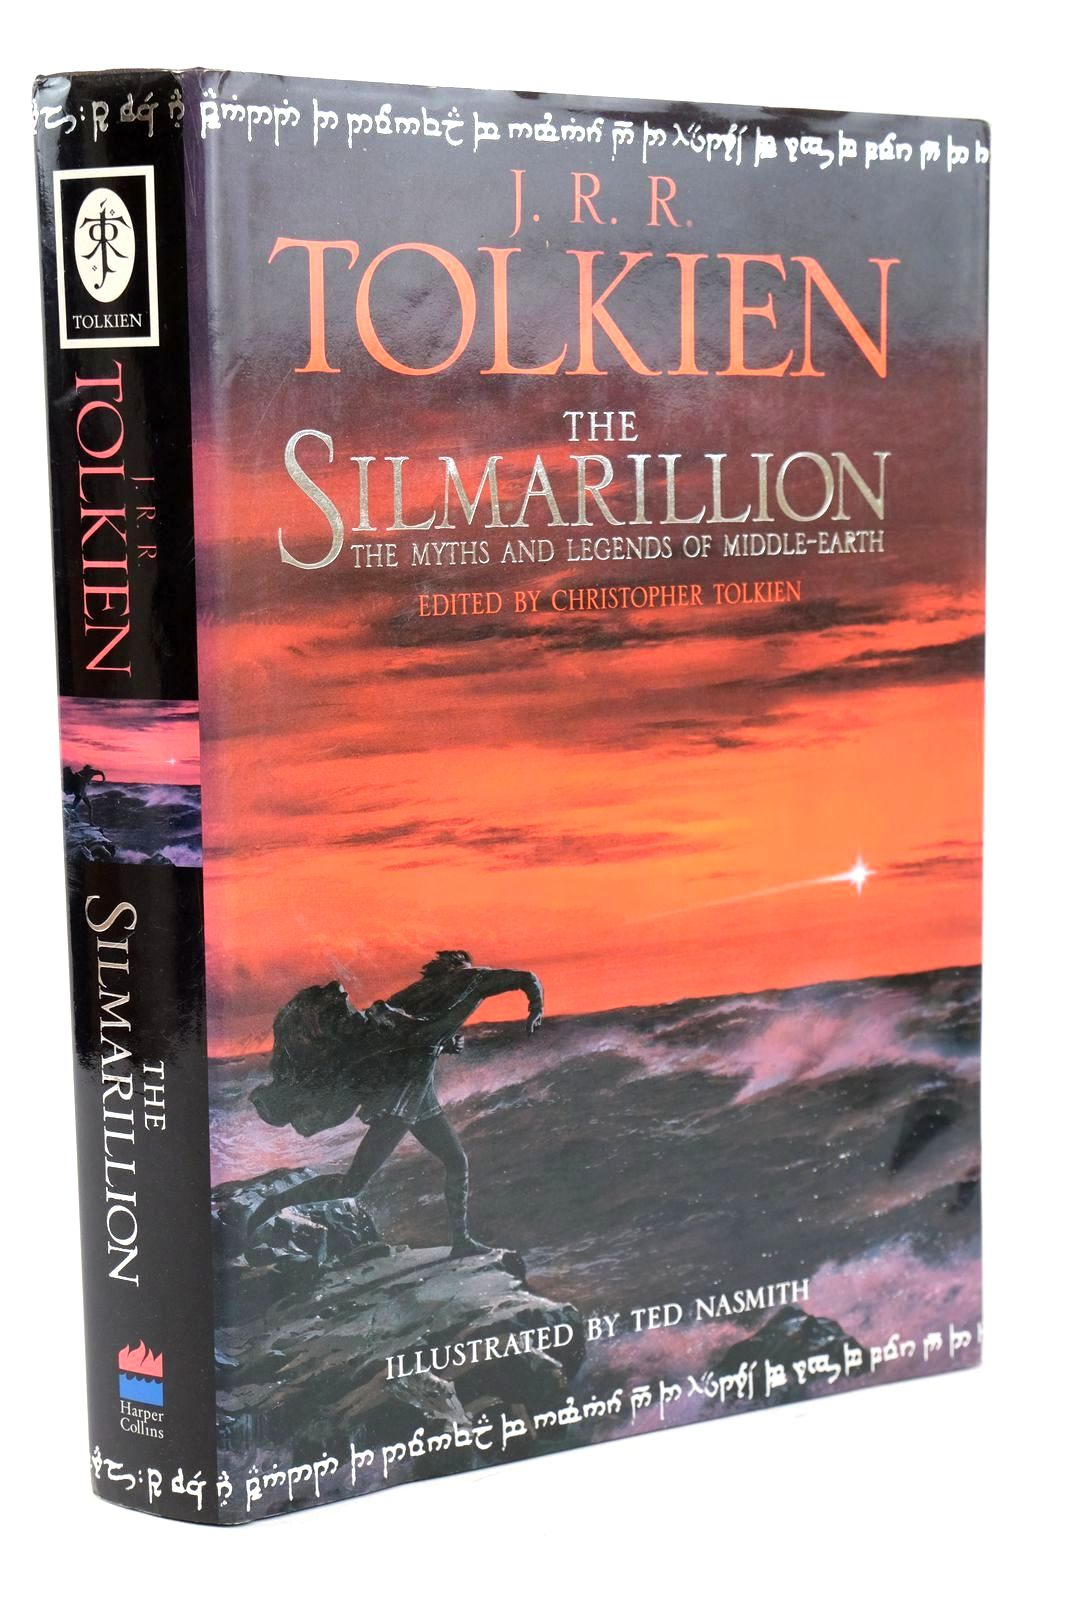 Photo of THE SILMARILLION written by Tolkien, J.R.R. Tolkien, Christopher illustrated by Nasmith, Ted published by Harper Collins (STOCK CODE: 1318972)  for sale by Stella & Rose's Books